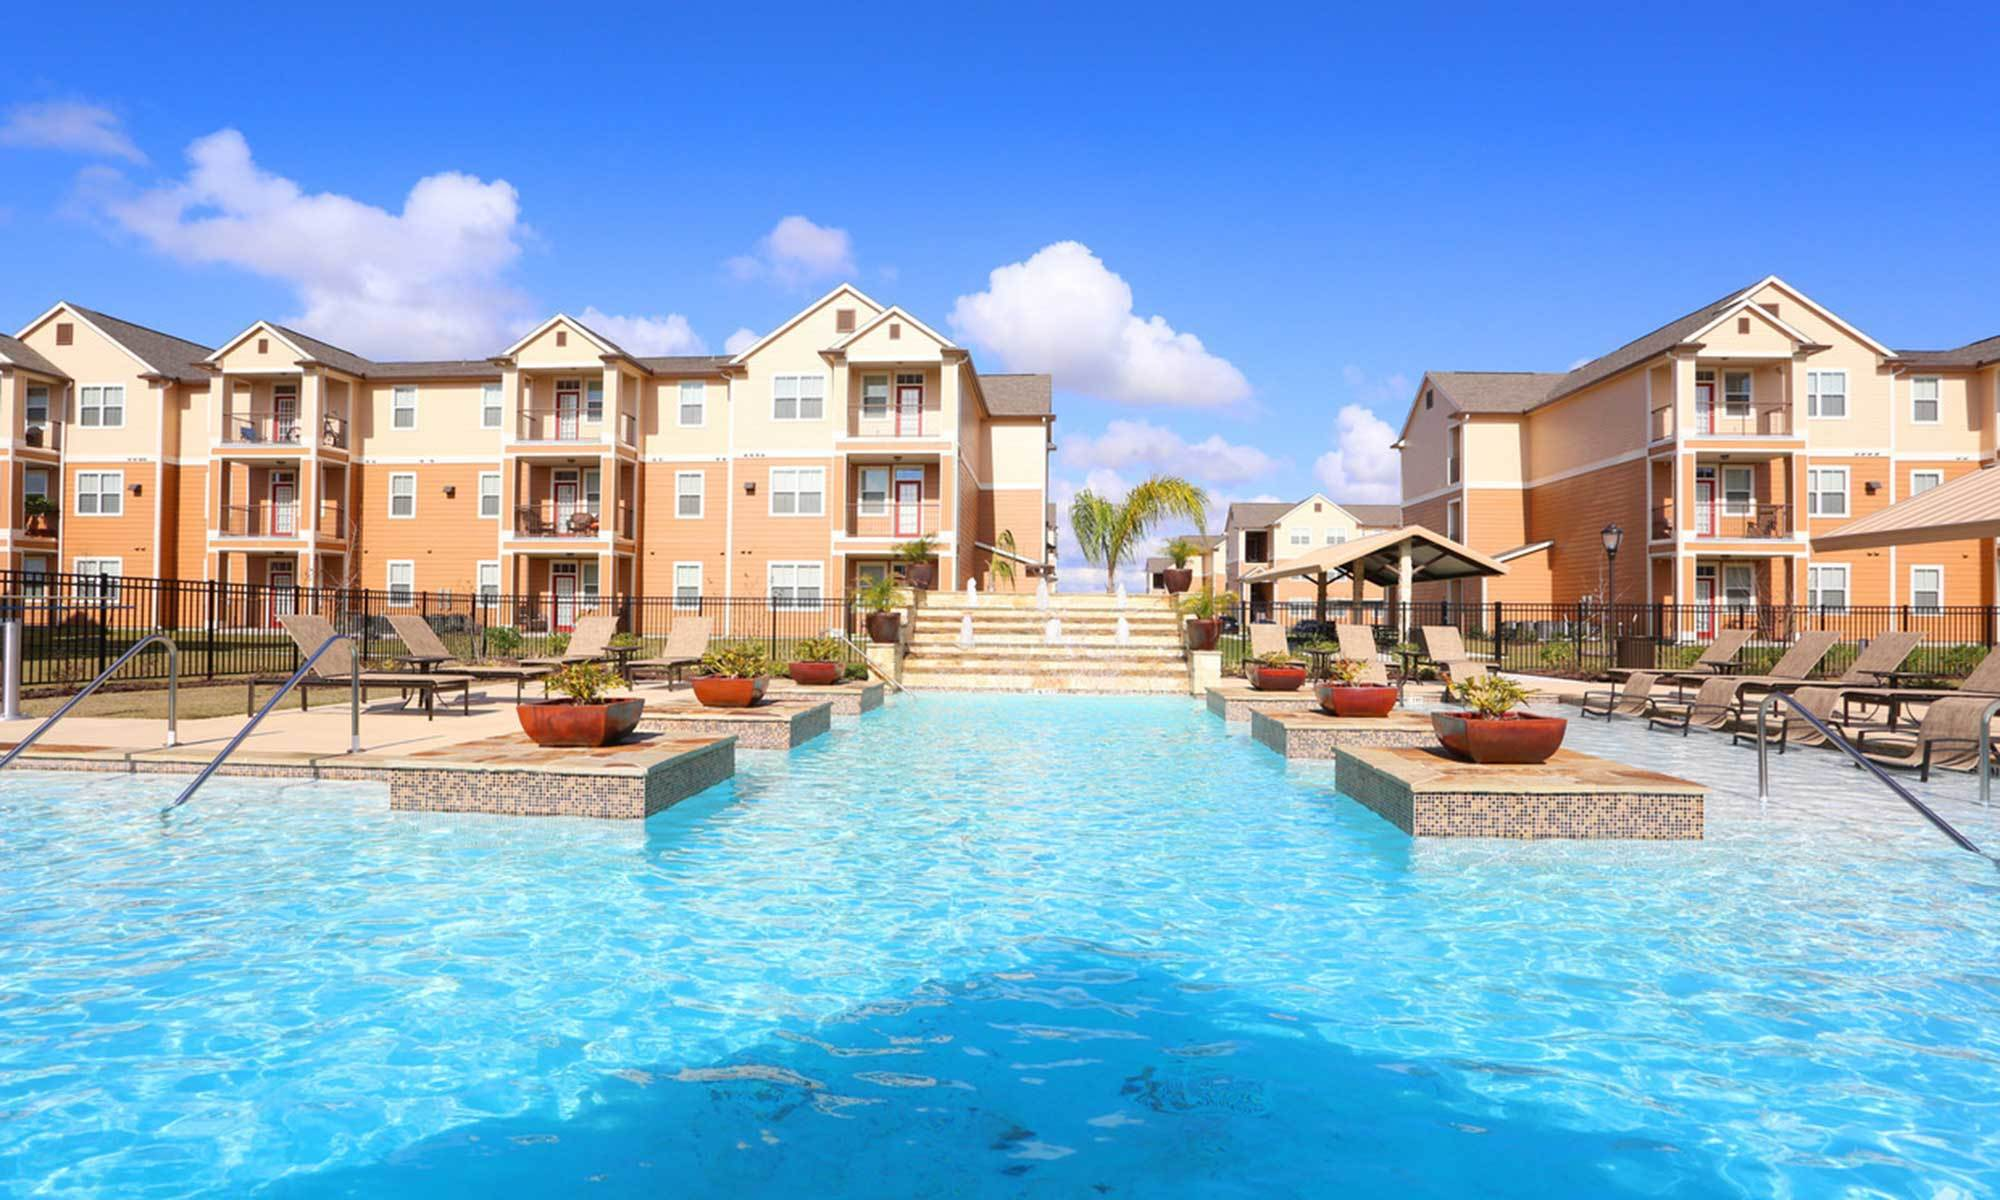 Apartments in Victoria, TX